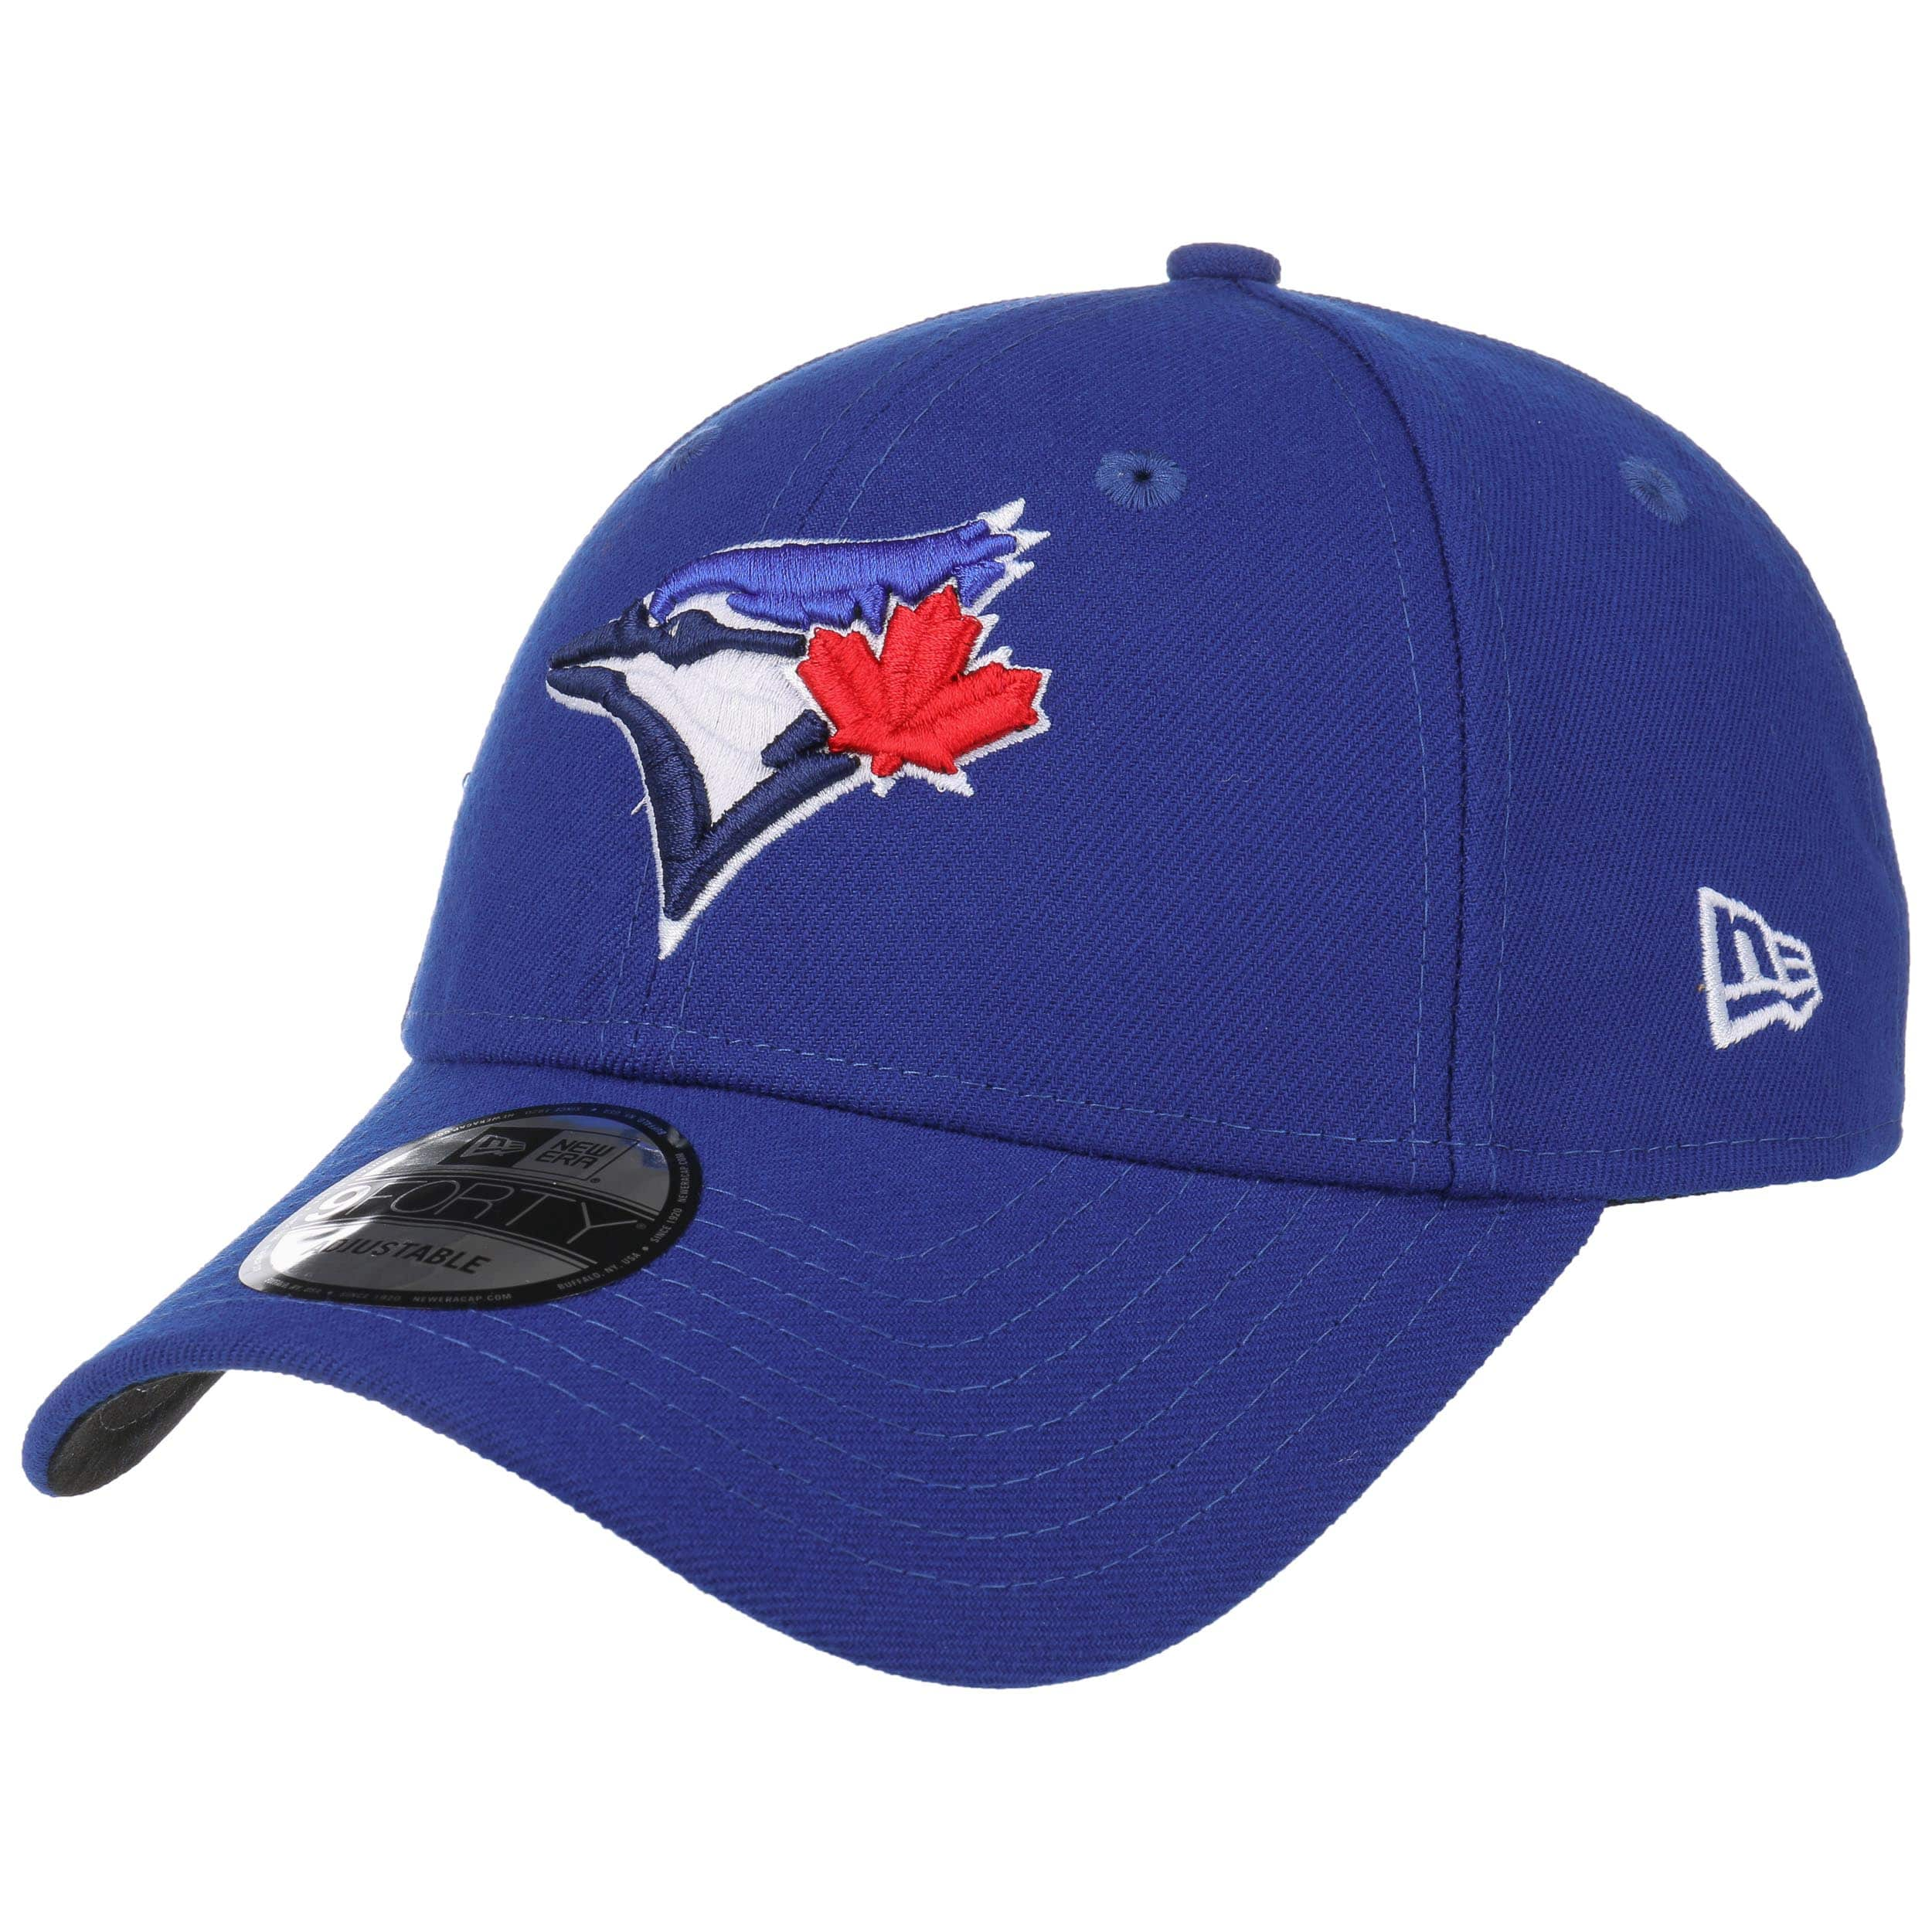 5c4158cee0a 9Forty The League Blue Jays Cap. by New Era